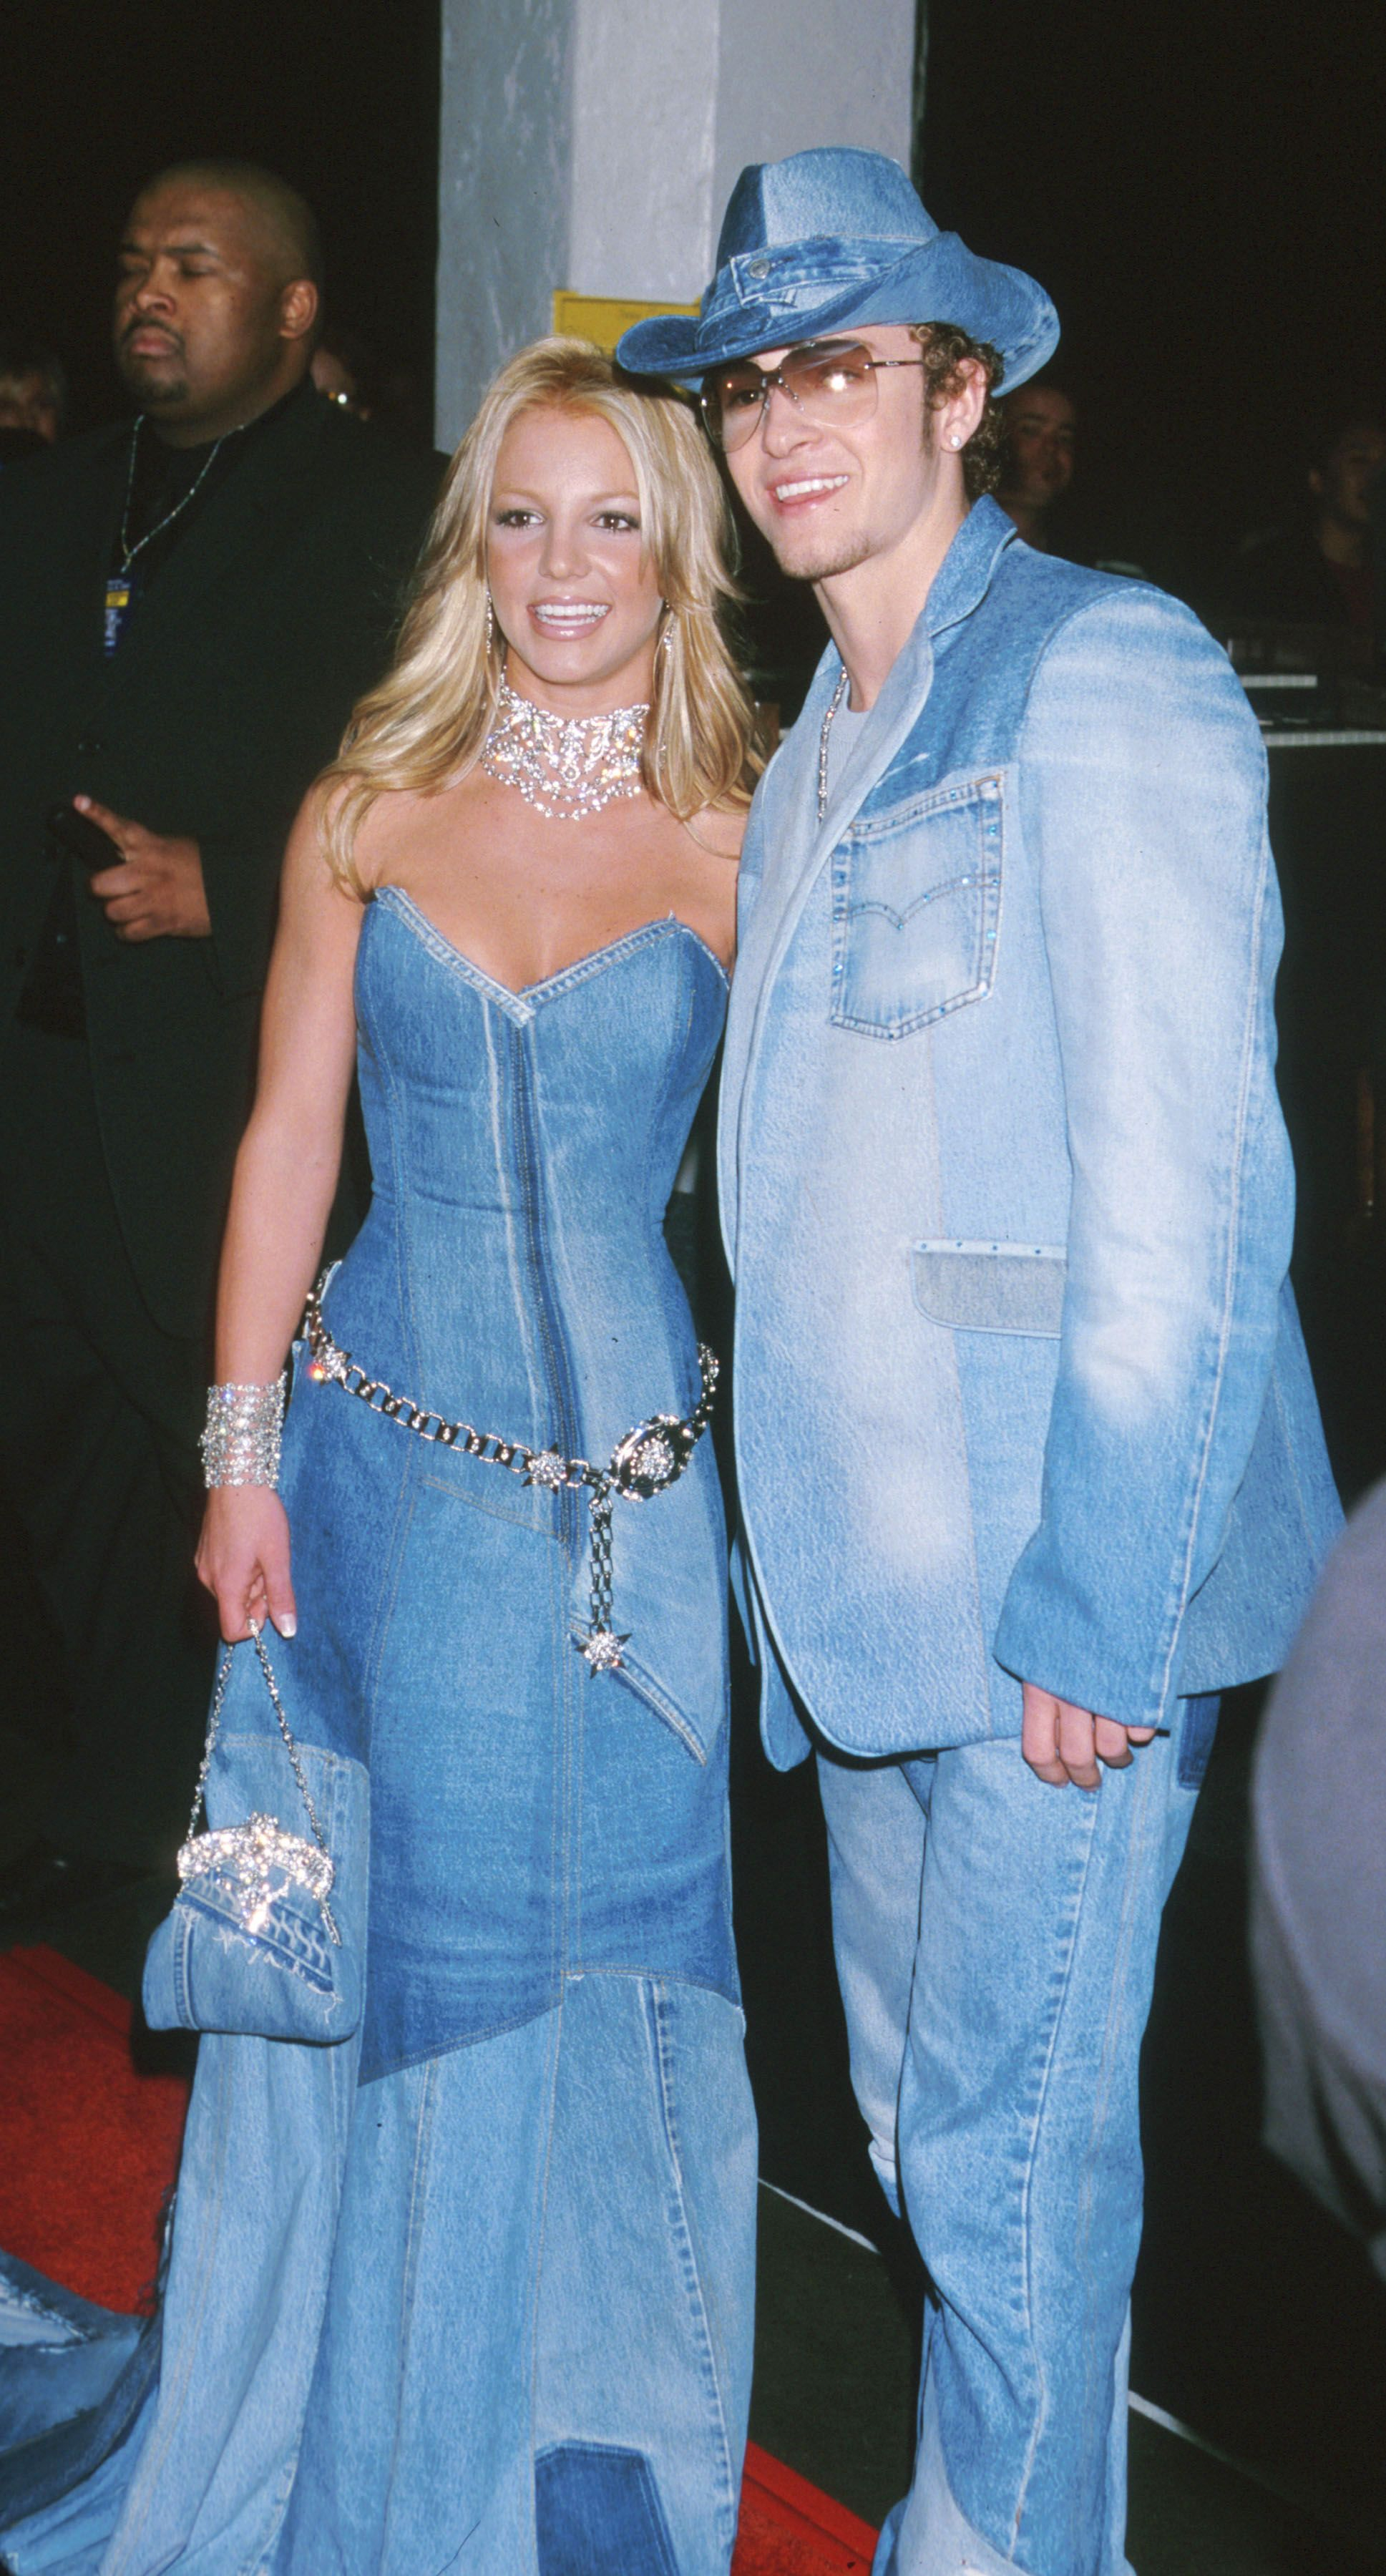 The Worst Early 2000s Fashion and Outfits - Celebrity Outfits From ...